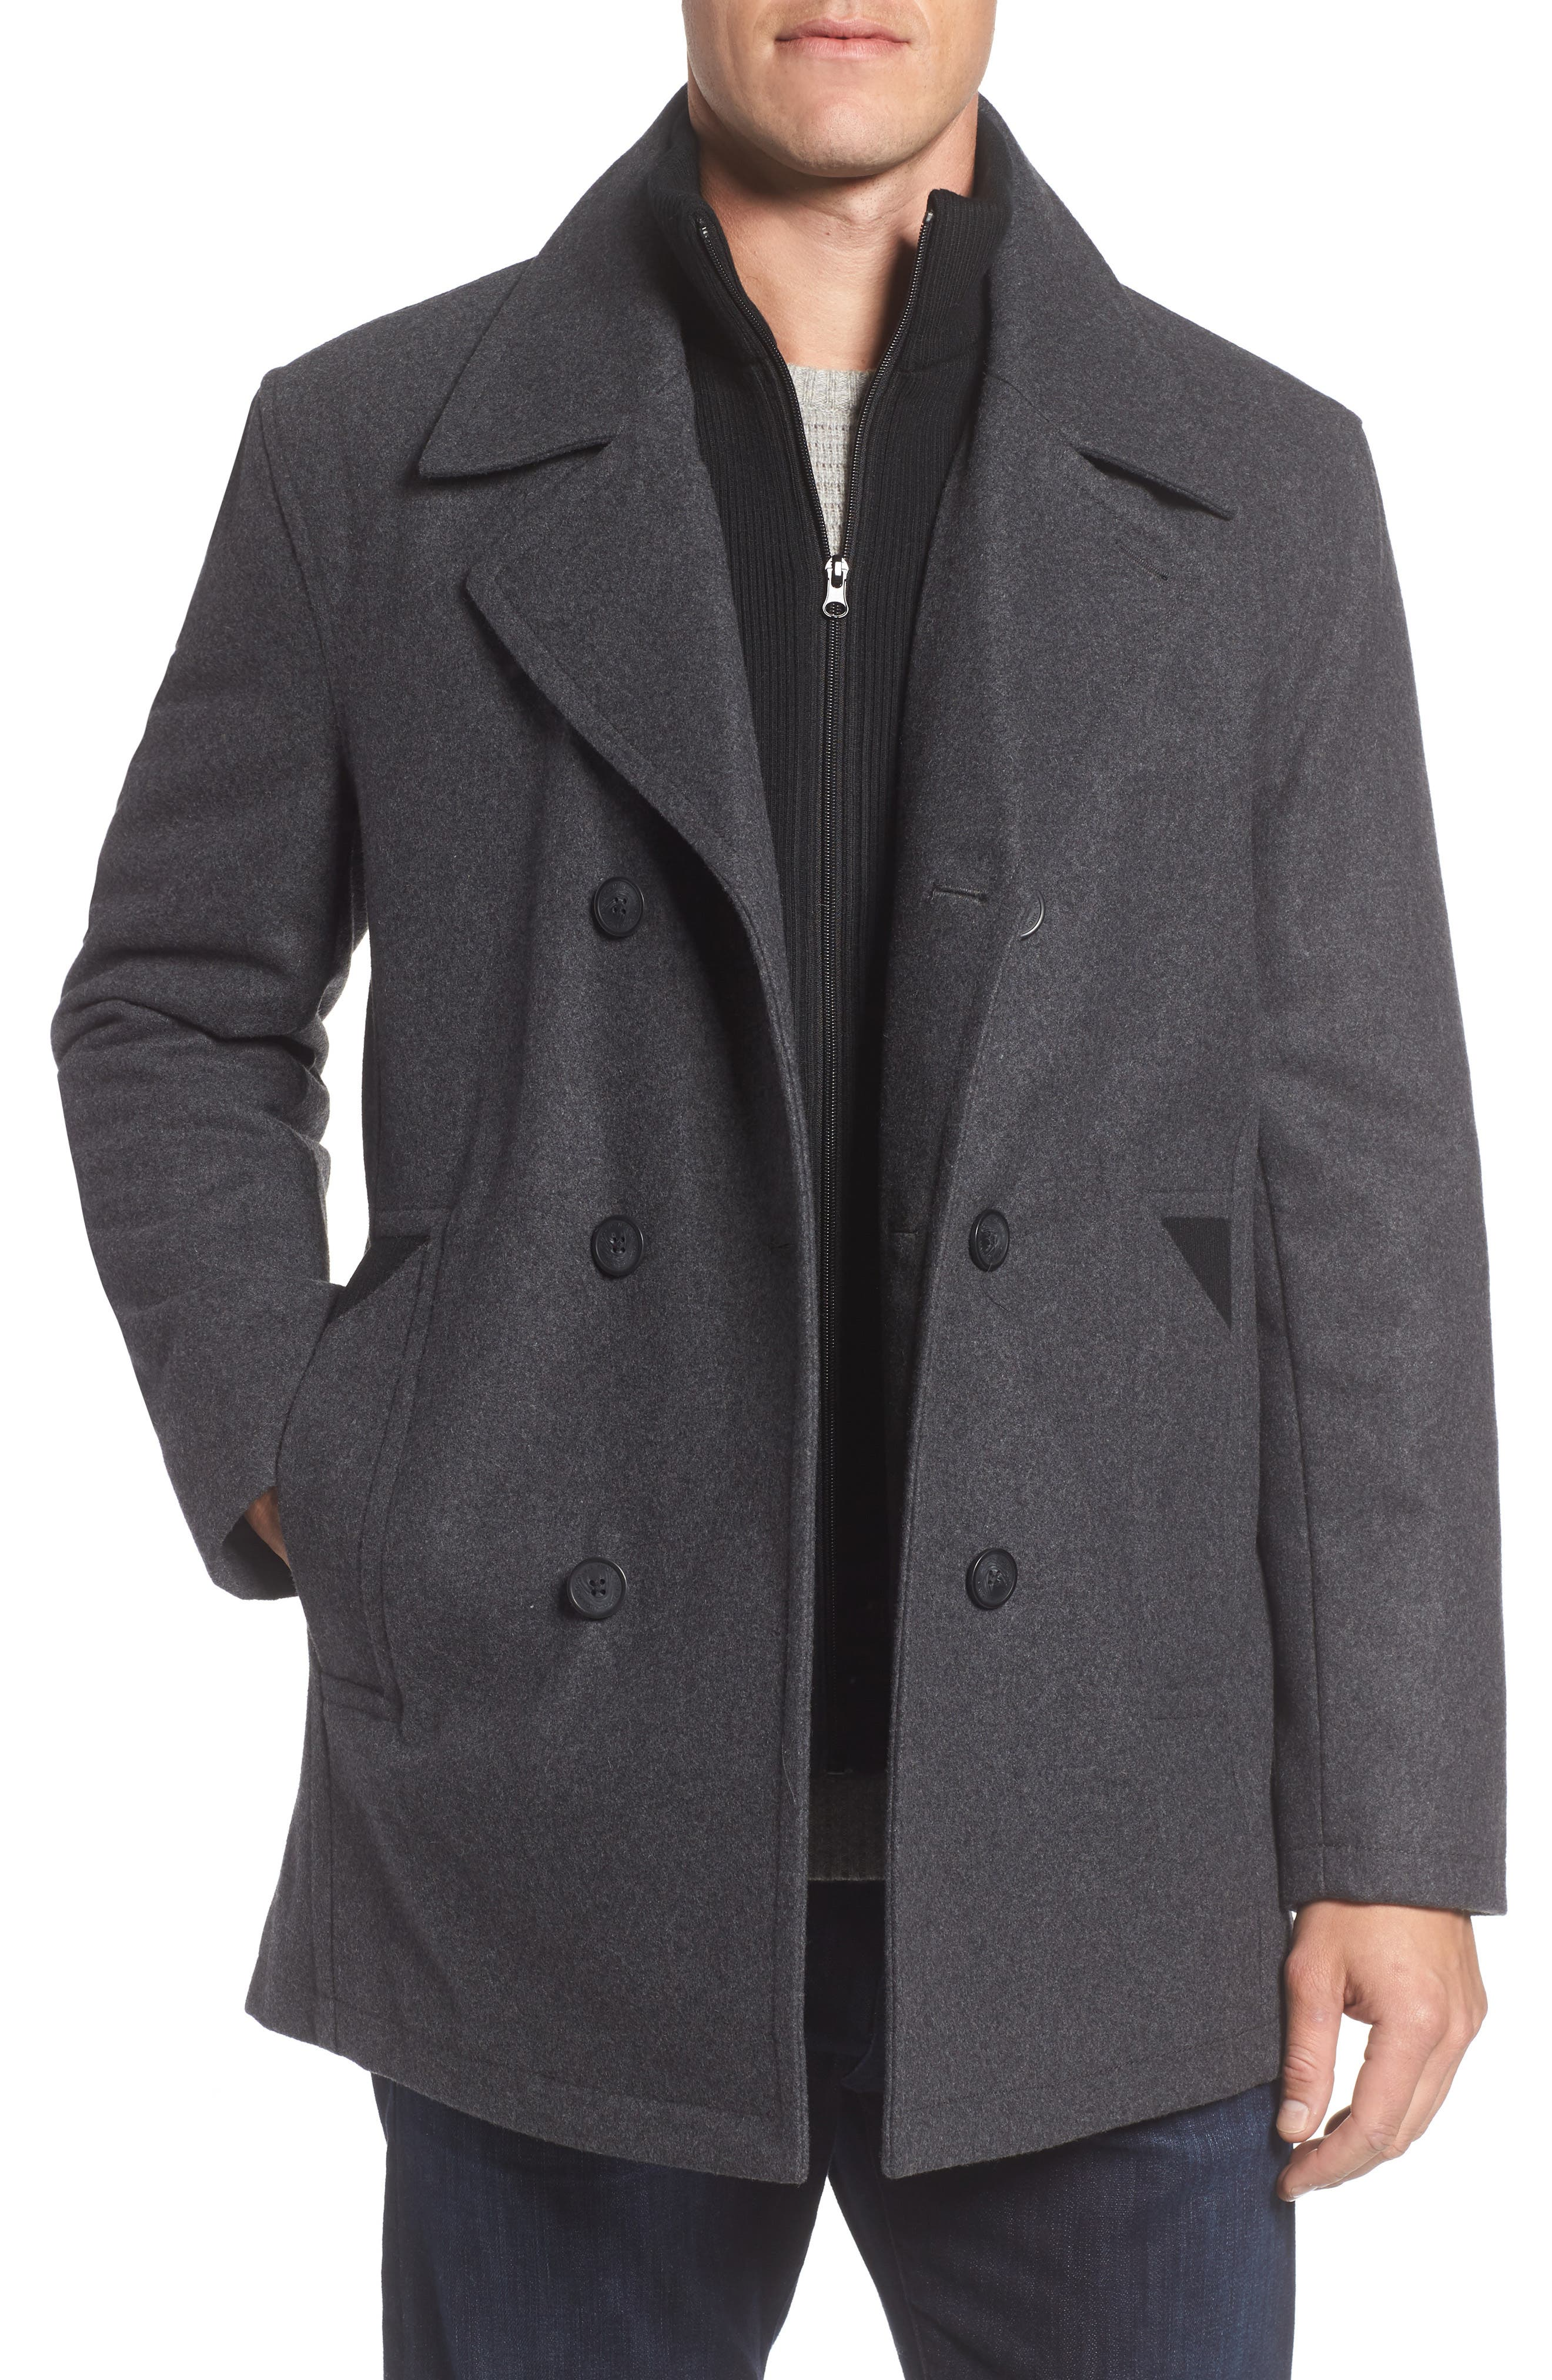 Burnett Wool Blend Peacoat with Front Insert,                         Main,                         color, Charcoal